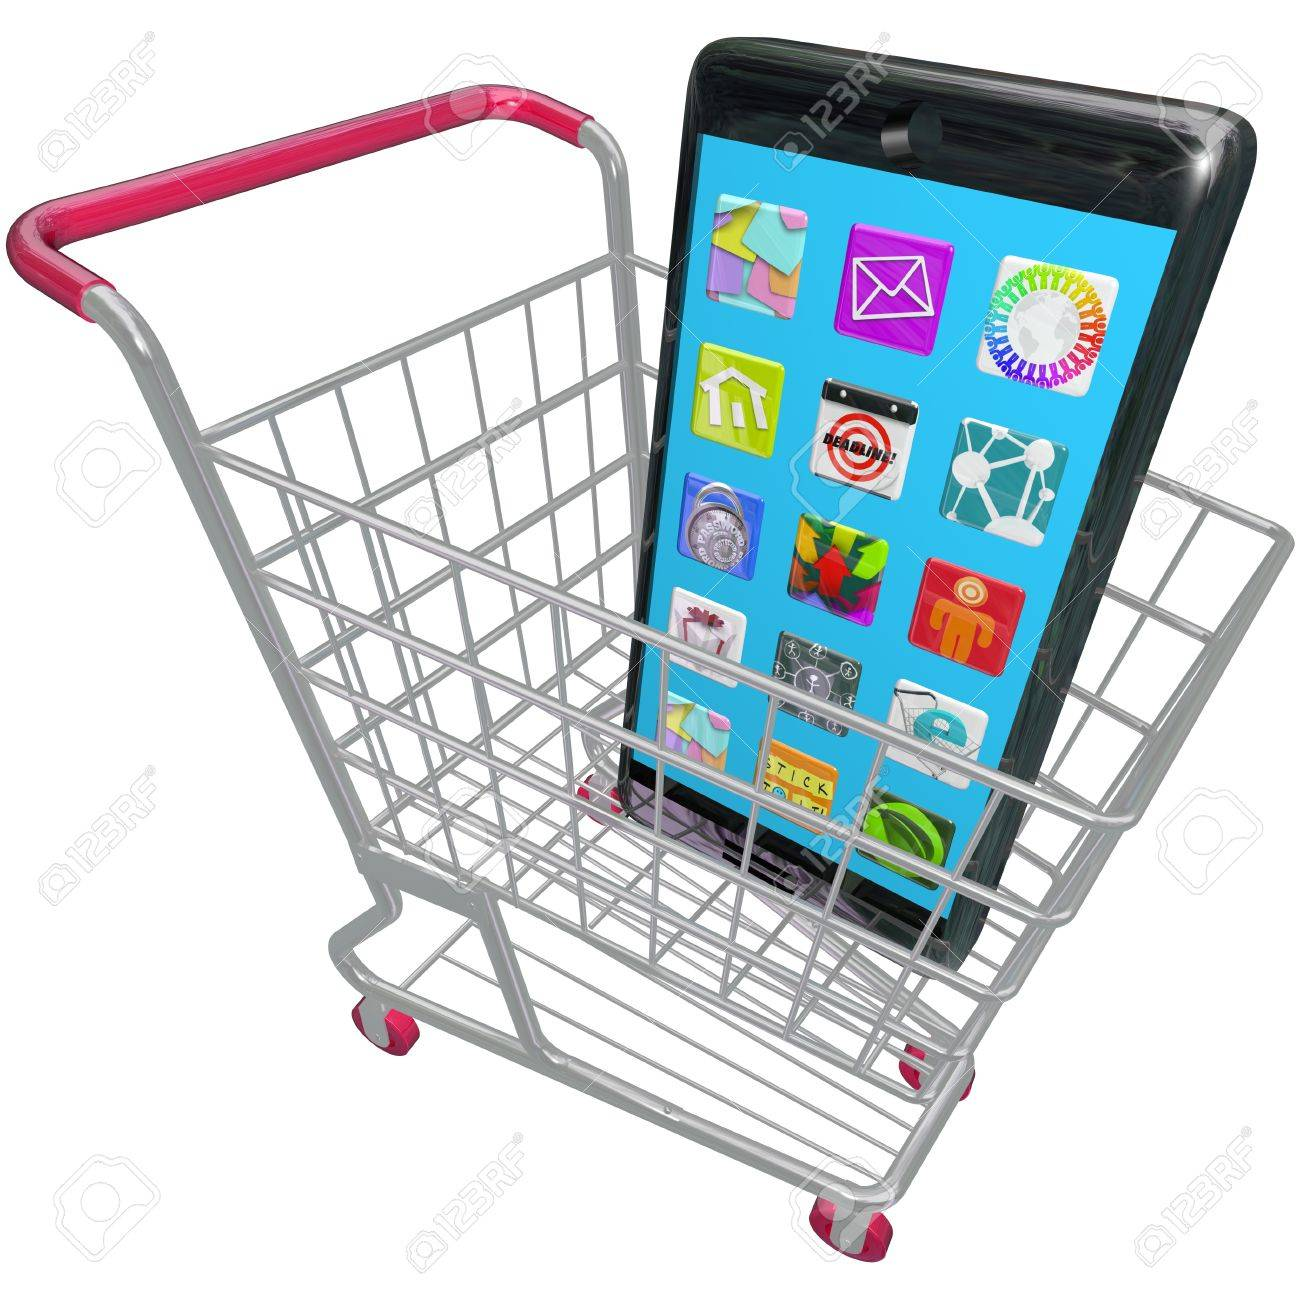 A new smart phone or cellphone in a shopping cart to illustrate buying a new mobile telephone Stock Photo - 19744861